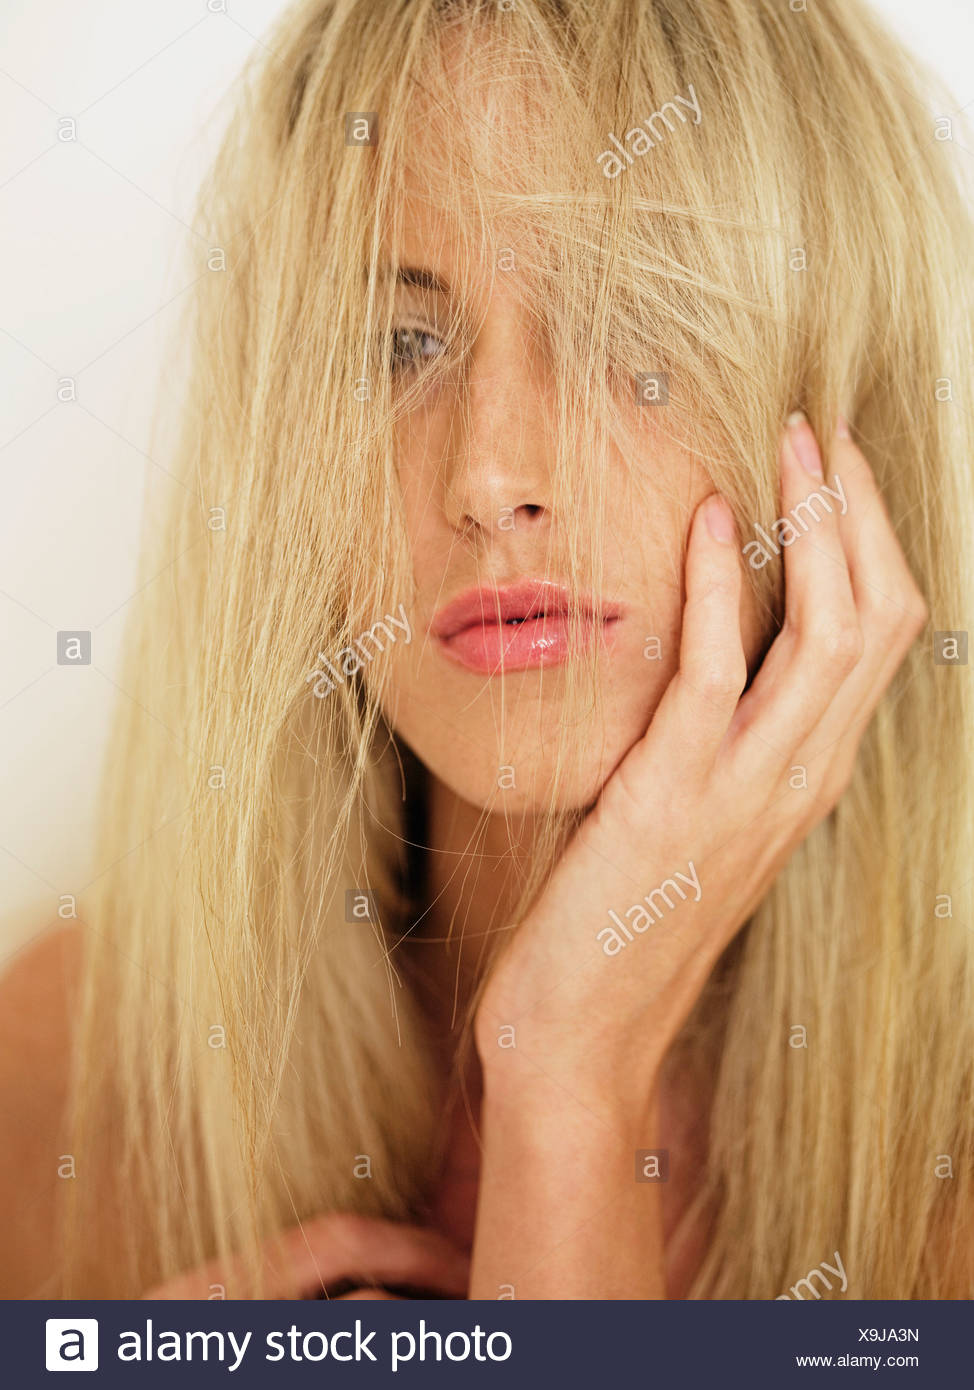 A woman with tousled hair, portrait - Stock Image